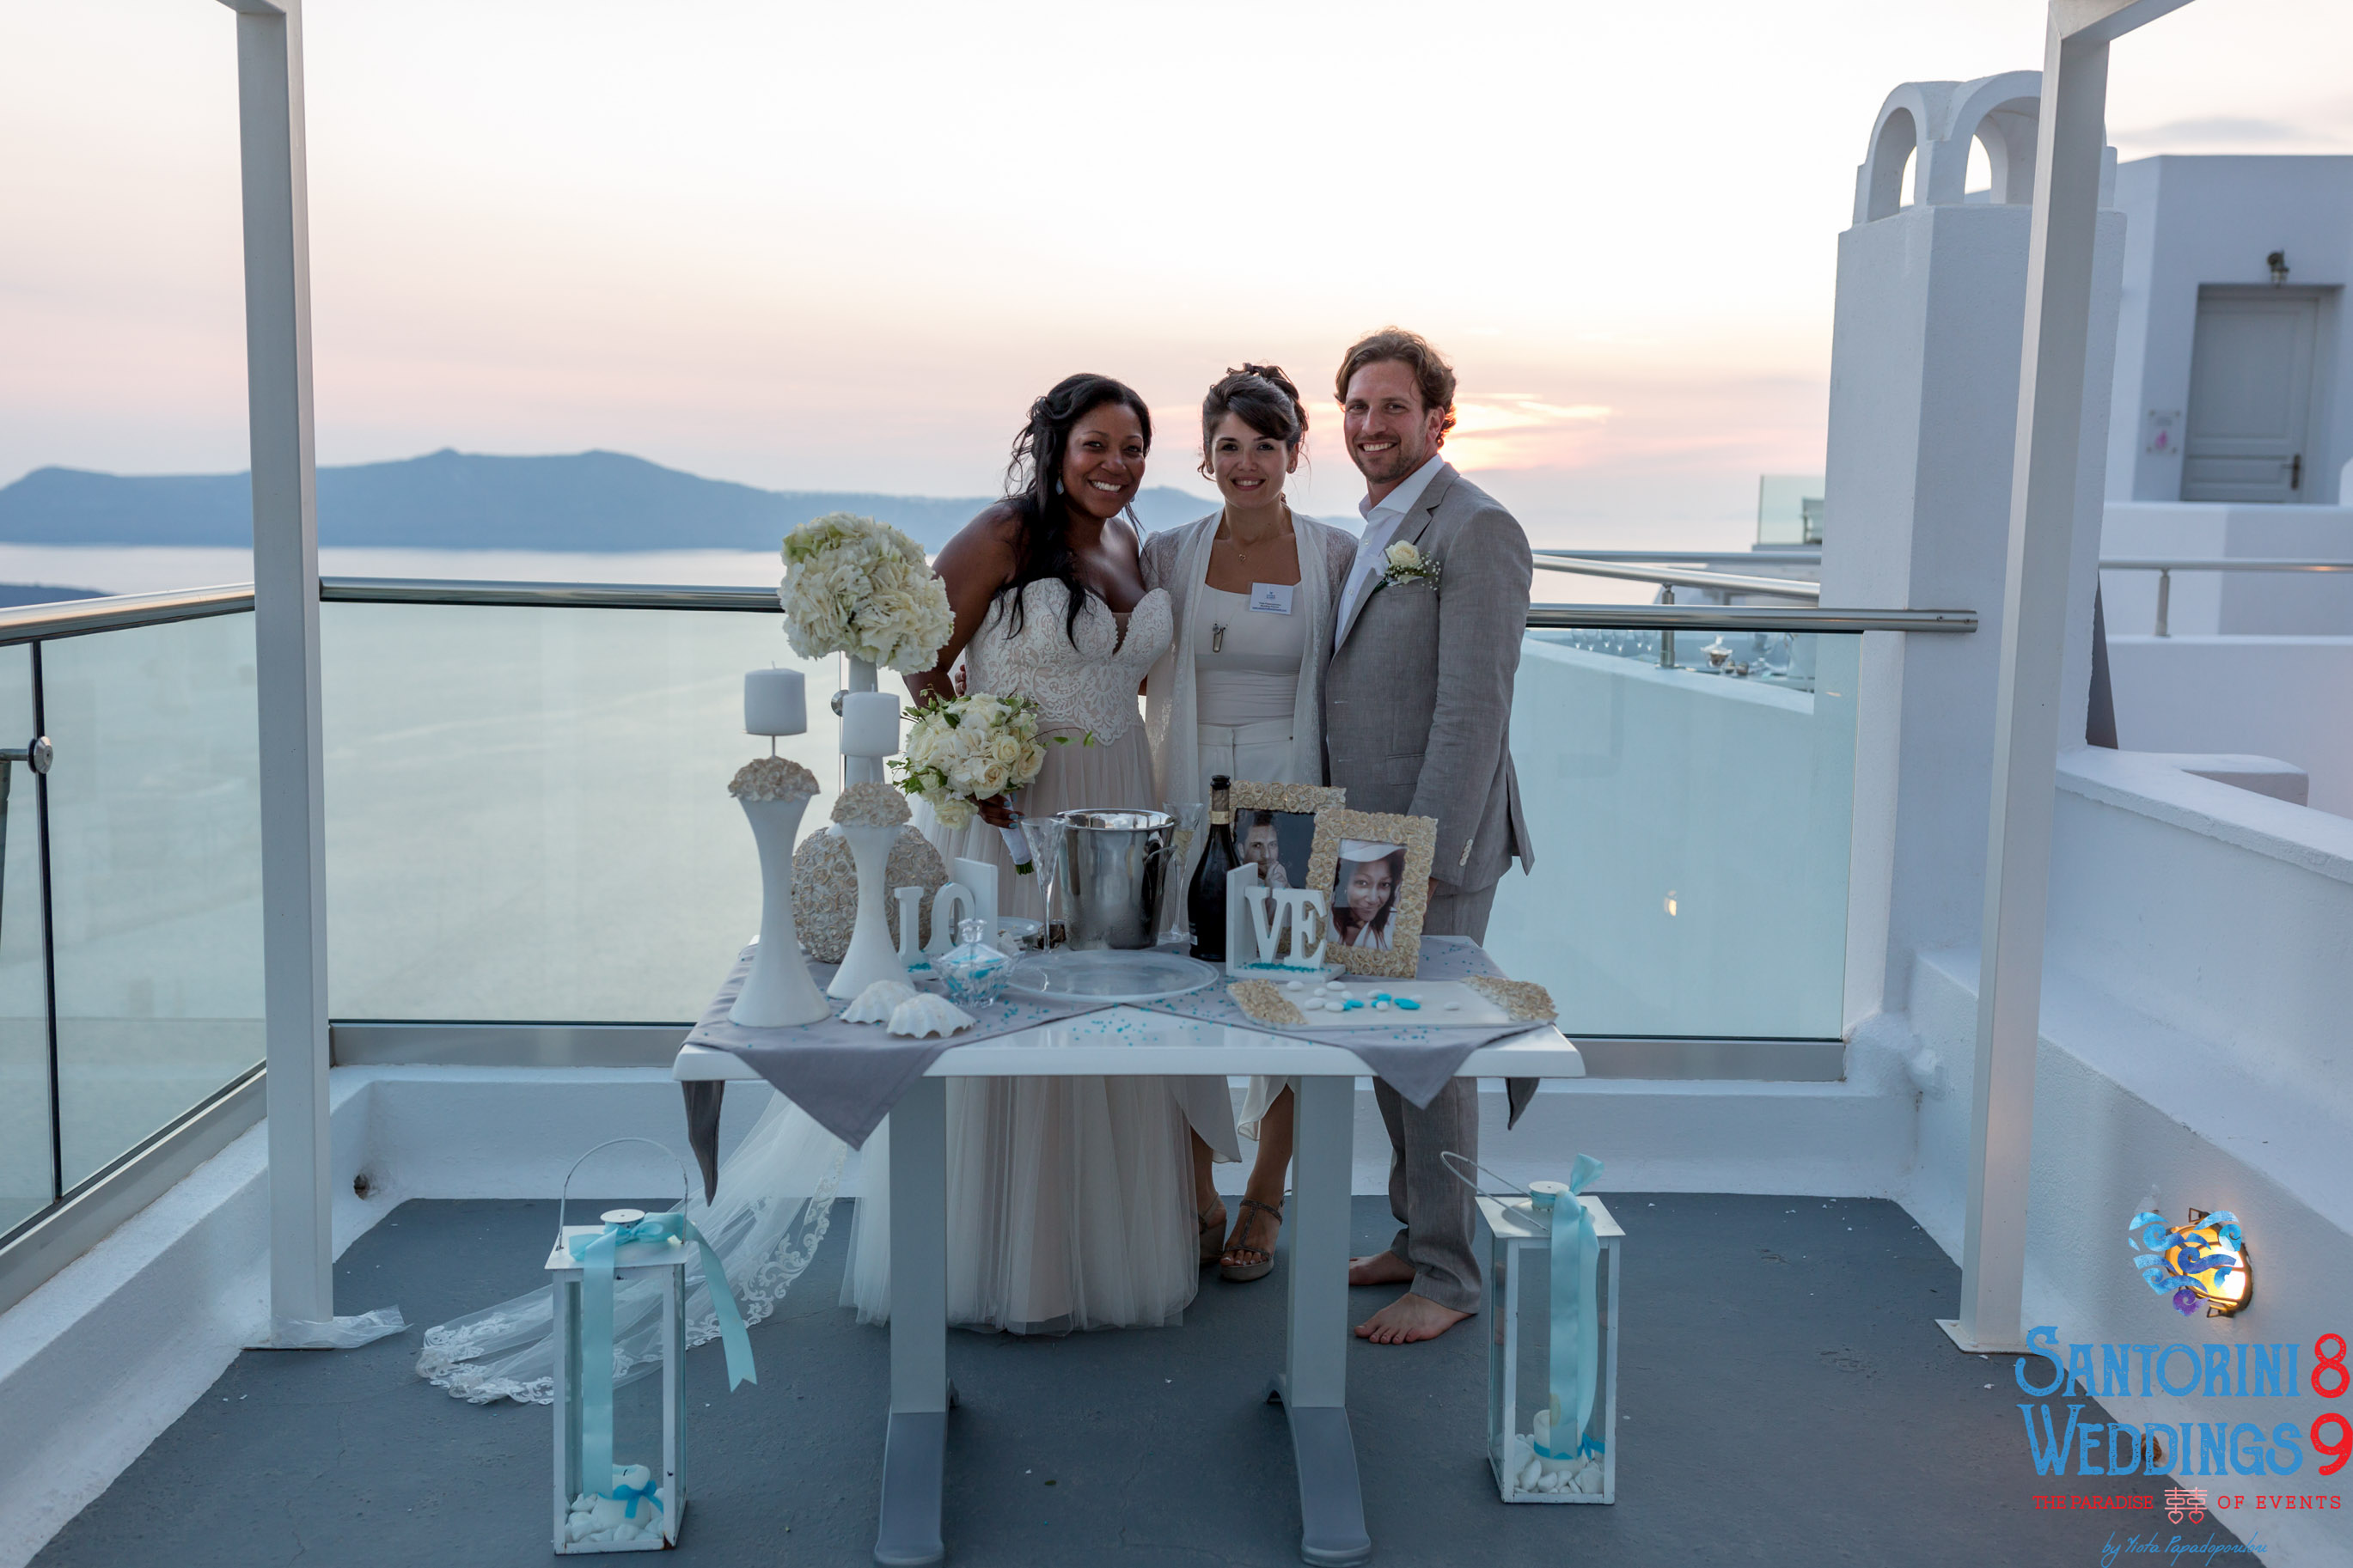 jason-lisa---unique-wedding-pictures-by-santorini8-weddings9-dragons-group-23.jpg